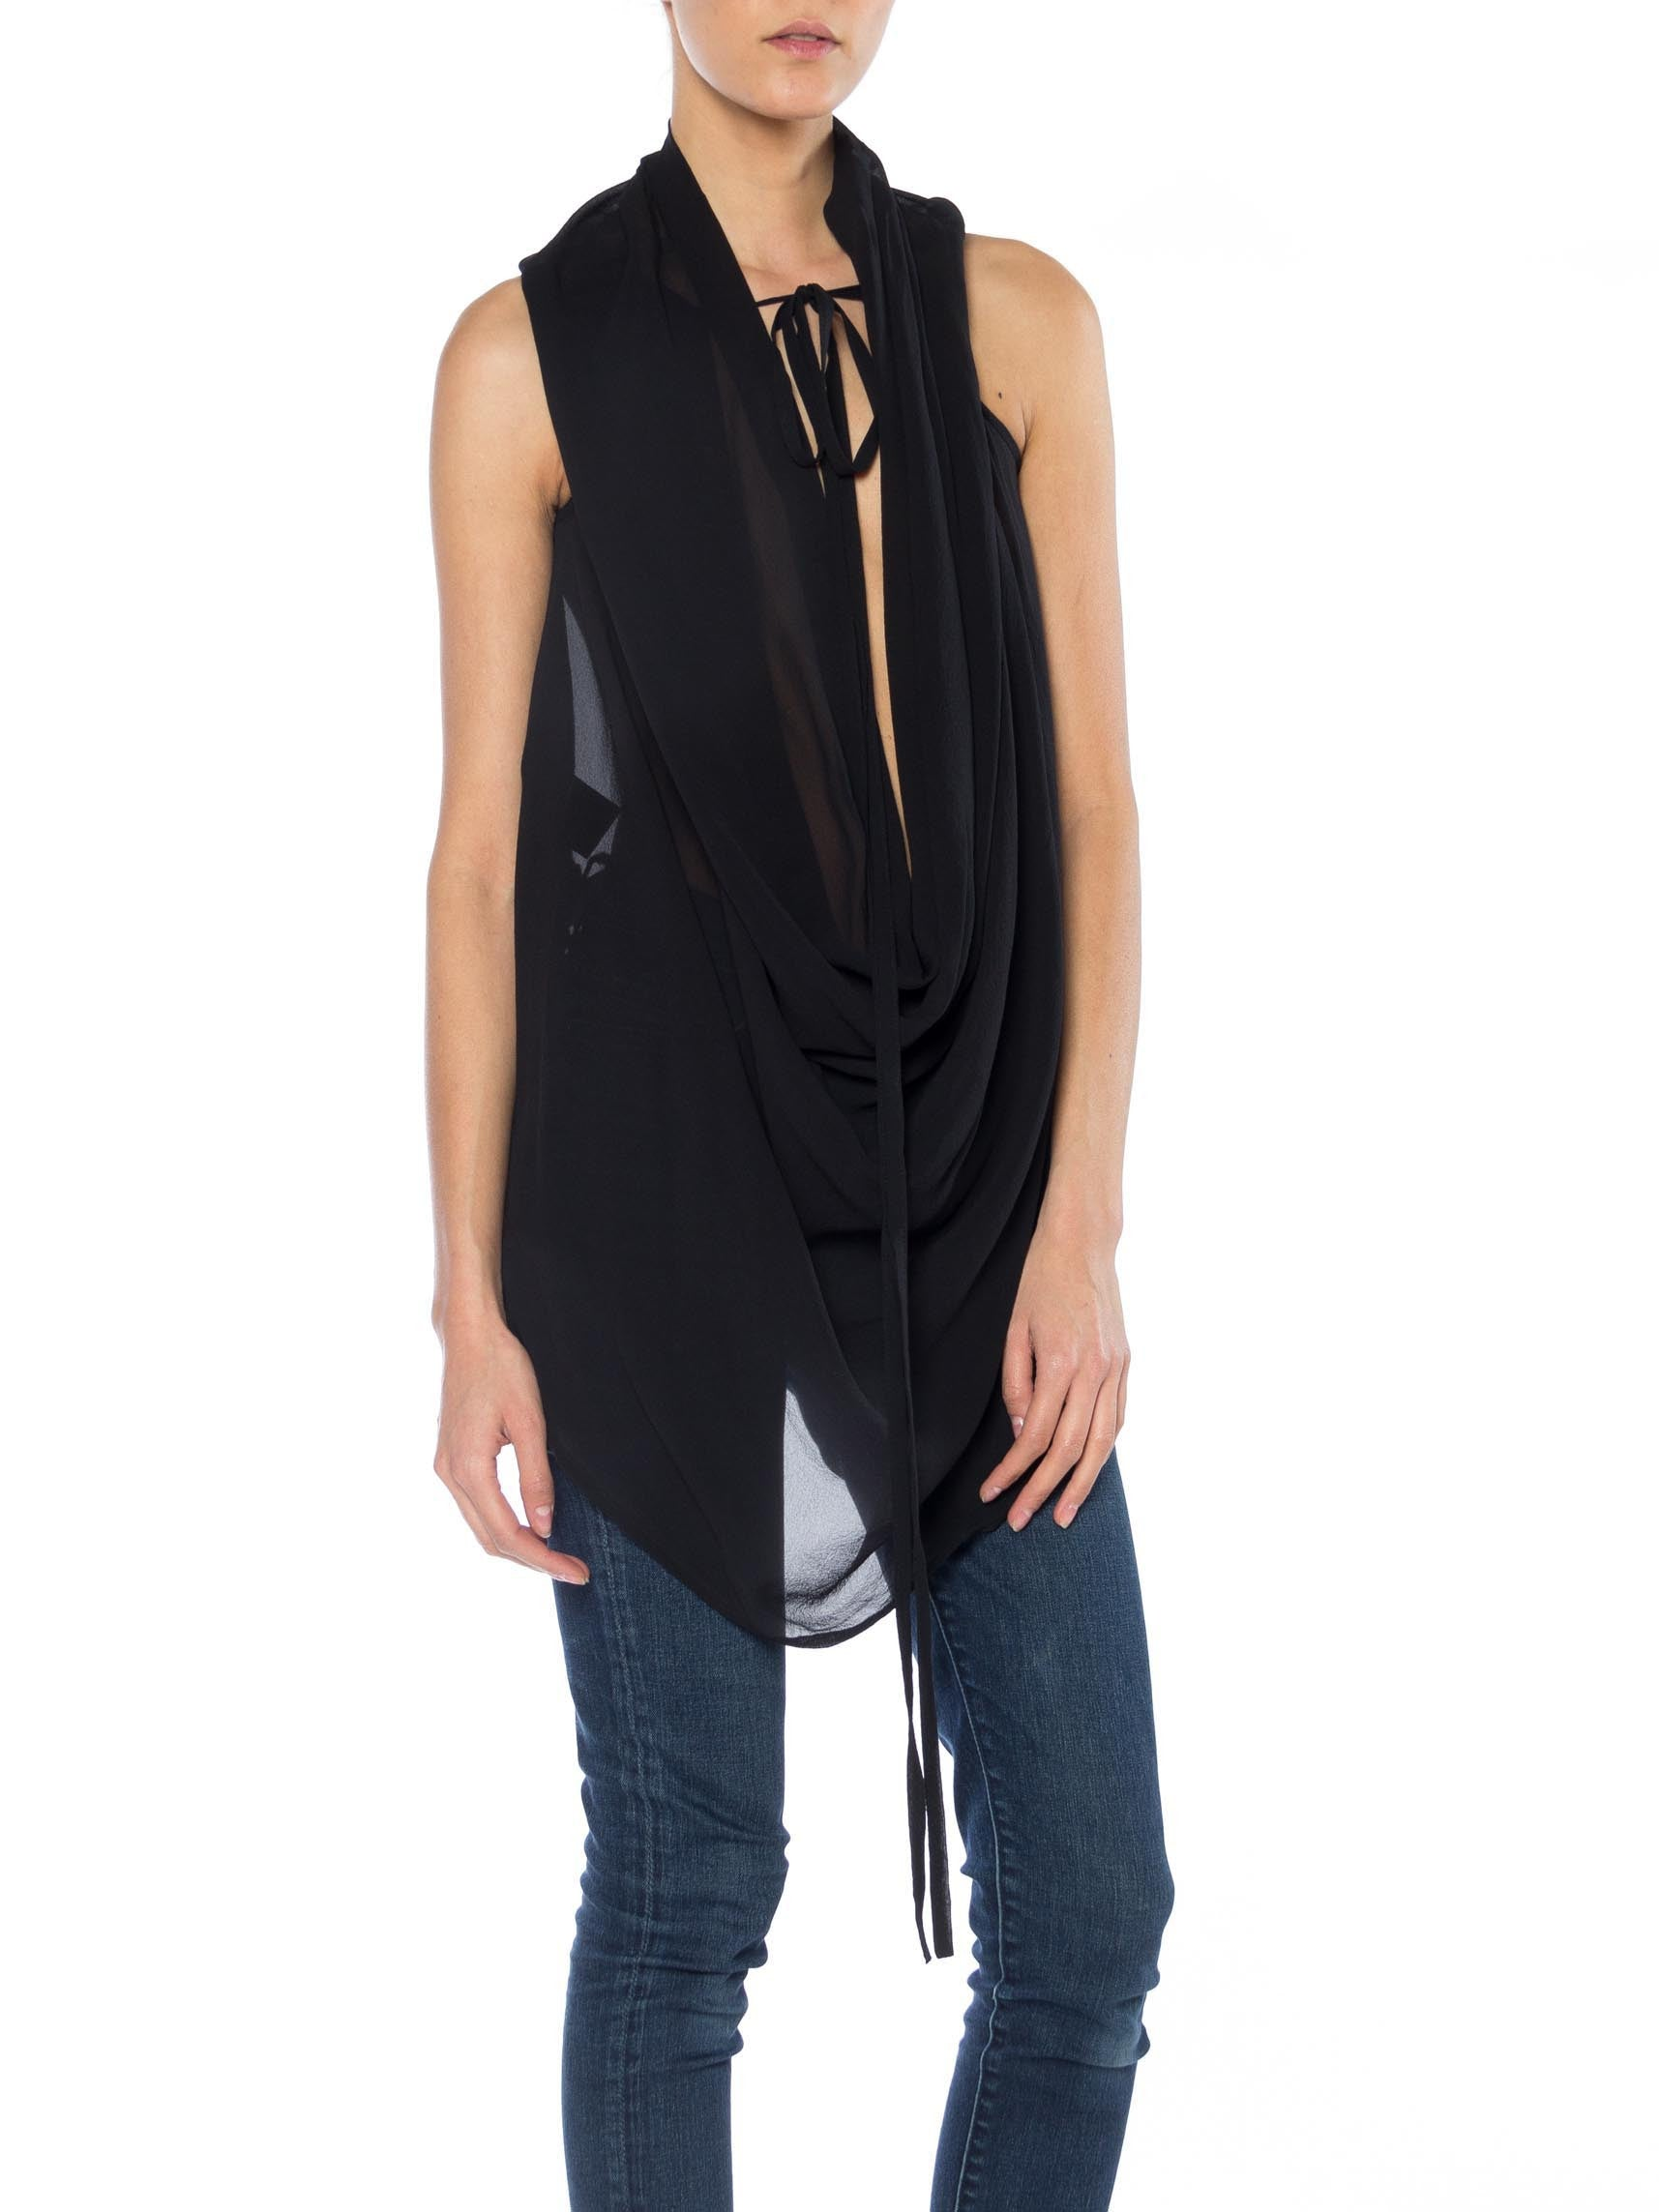 1990S Ann Demeulemeester Black Silk Chiffon Draped Tie Neck Top | Shop Ann Demeulemeester | Vintage Clothing | New York City | 24hrs- Free Return policy | US Free Shipping | Pre-owned Clothing | Sustainable fashion | Vintage tops